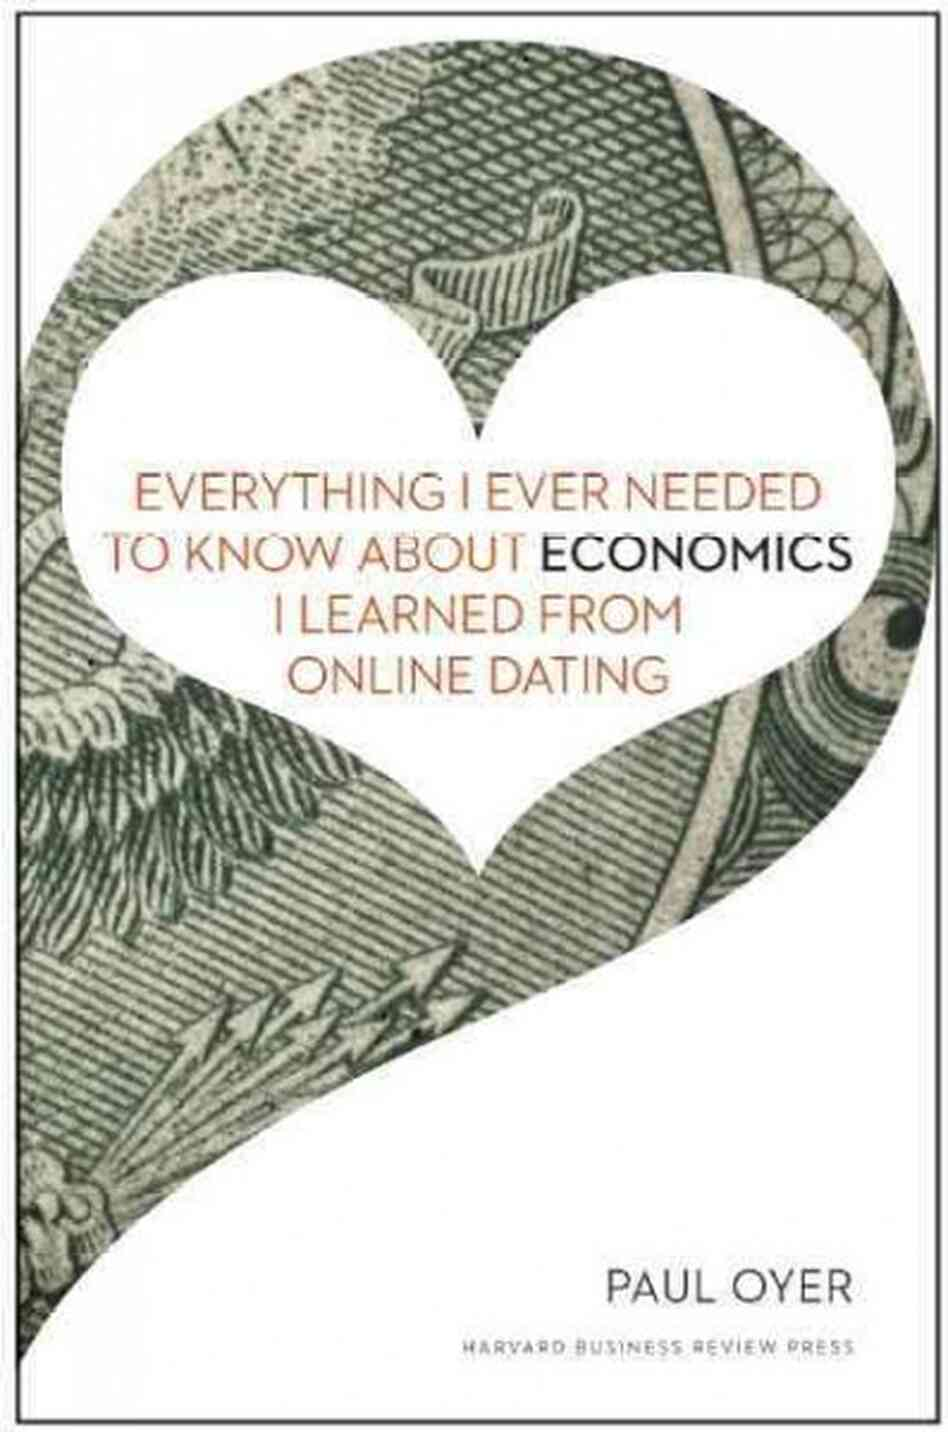 dating sites reviews npr books: